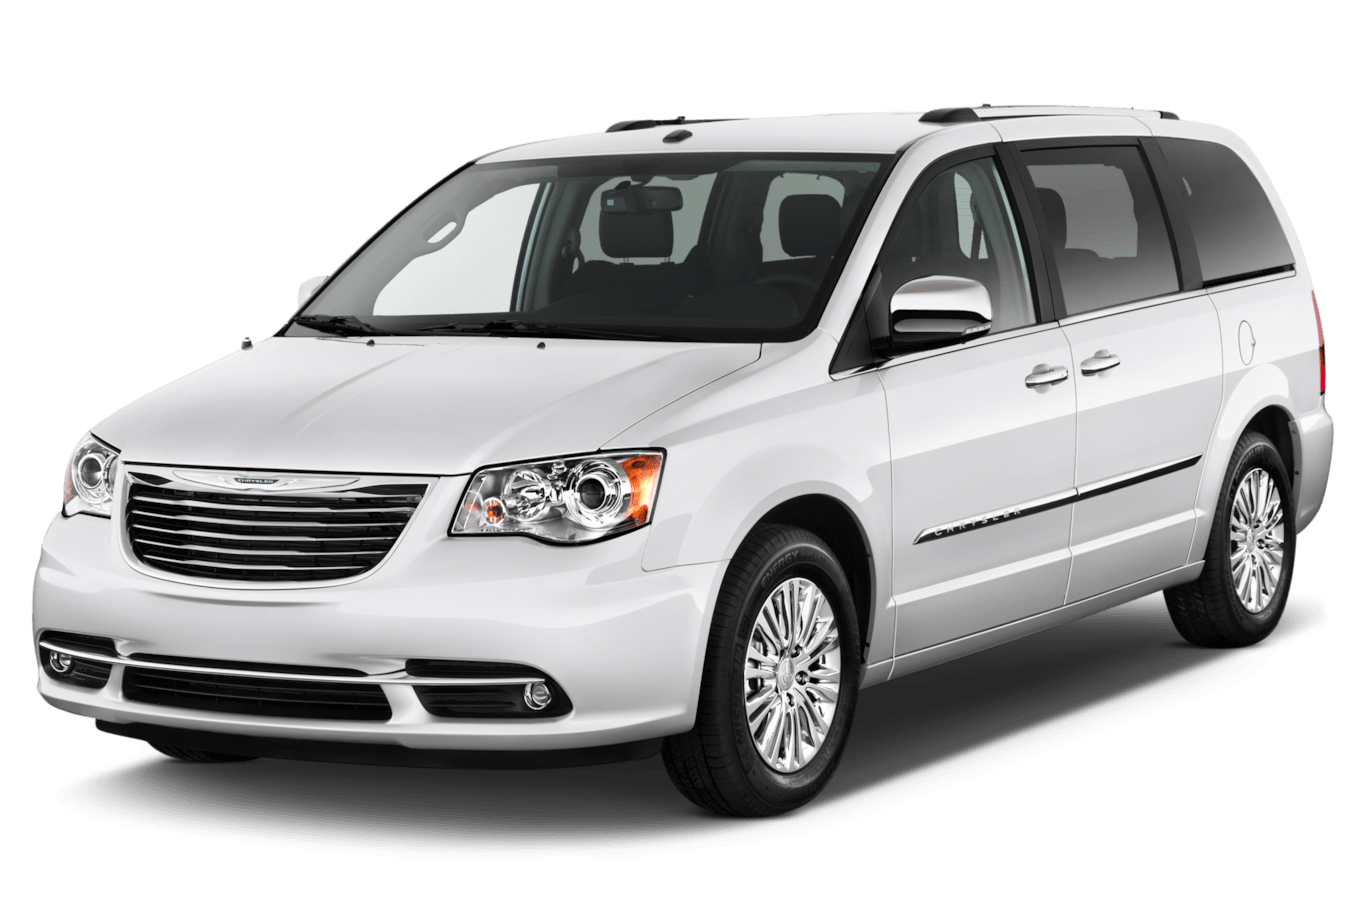 small resolution of new 2012 dodge caravan and chrysler town country 36 fuse box 2012 chrysler town and country fuse box diagram 2012 chrysler town and country fuse box